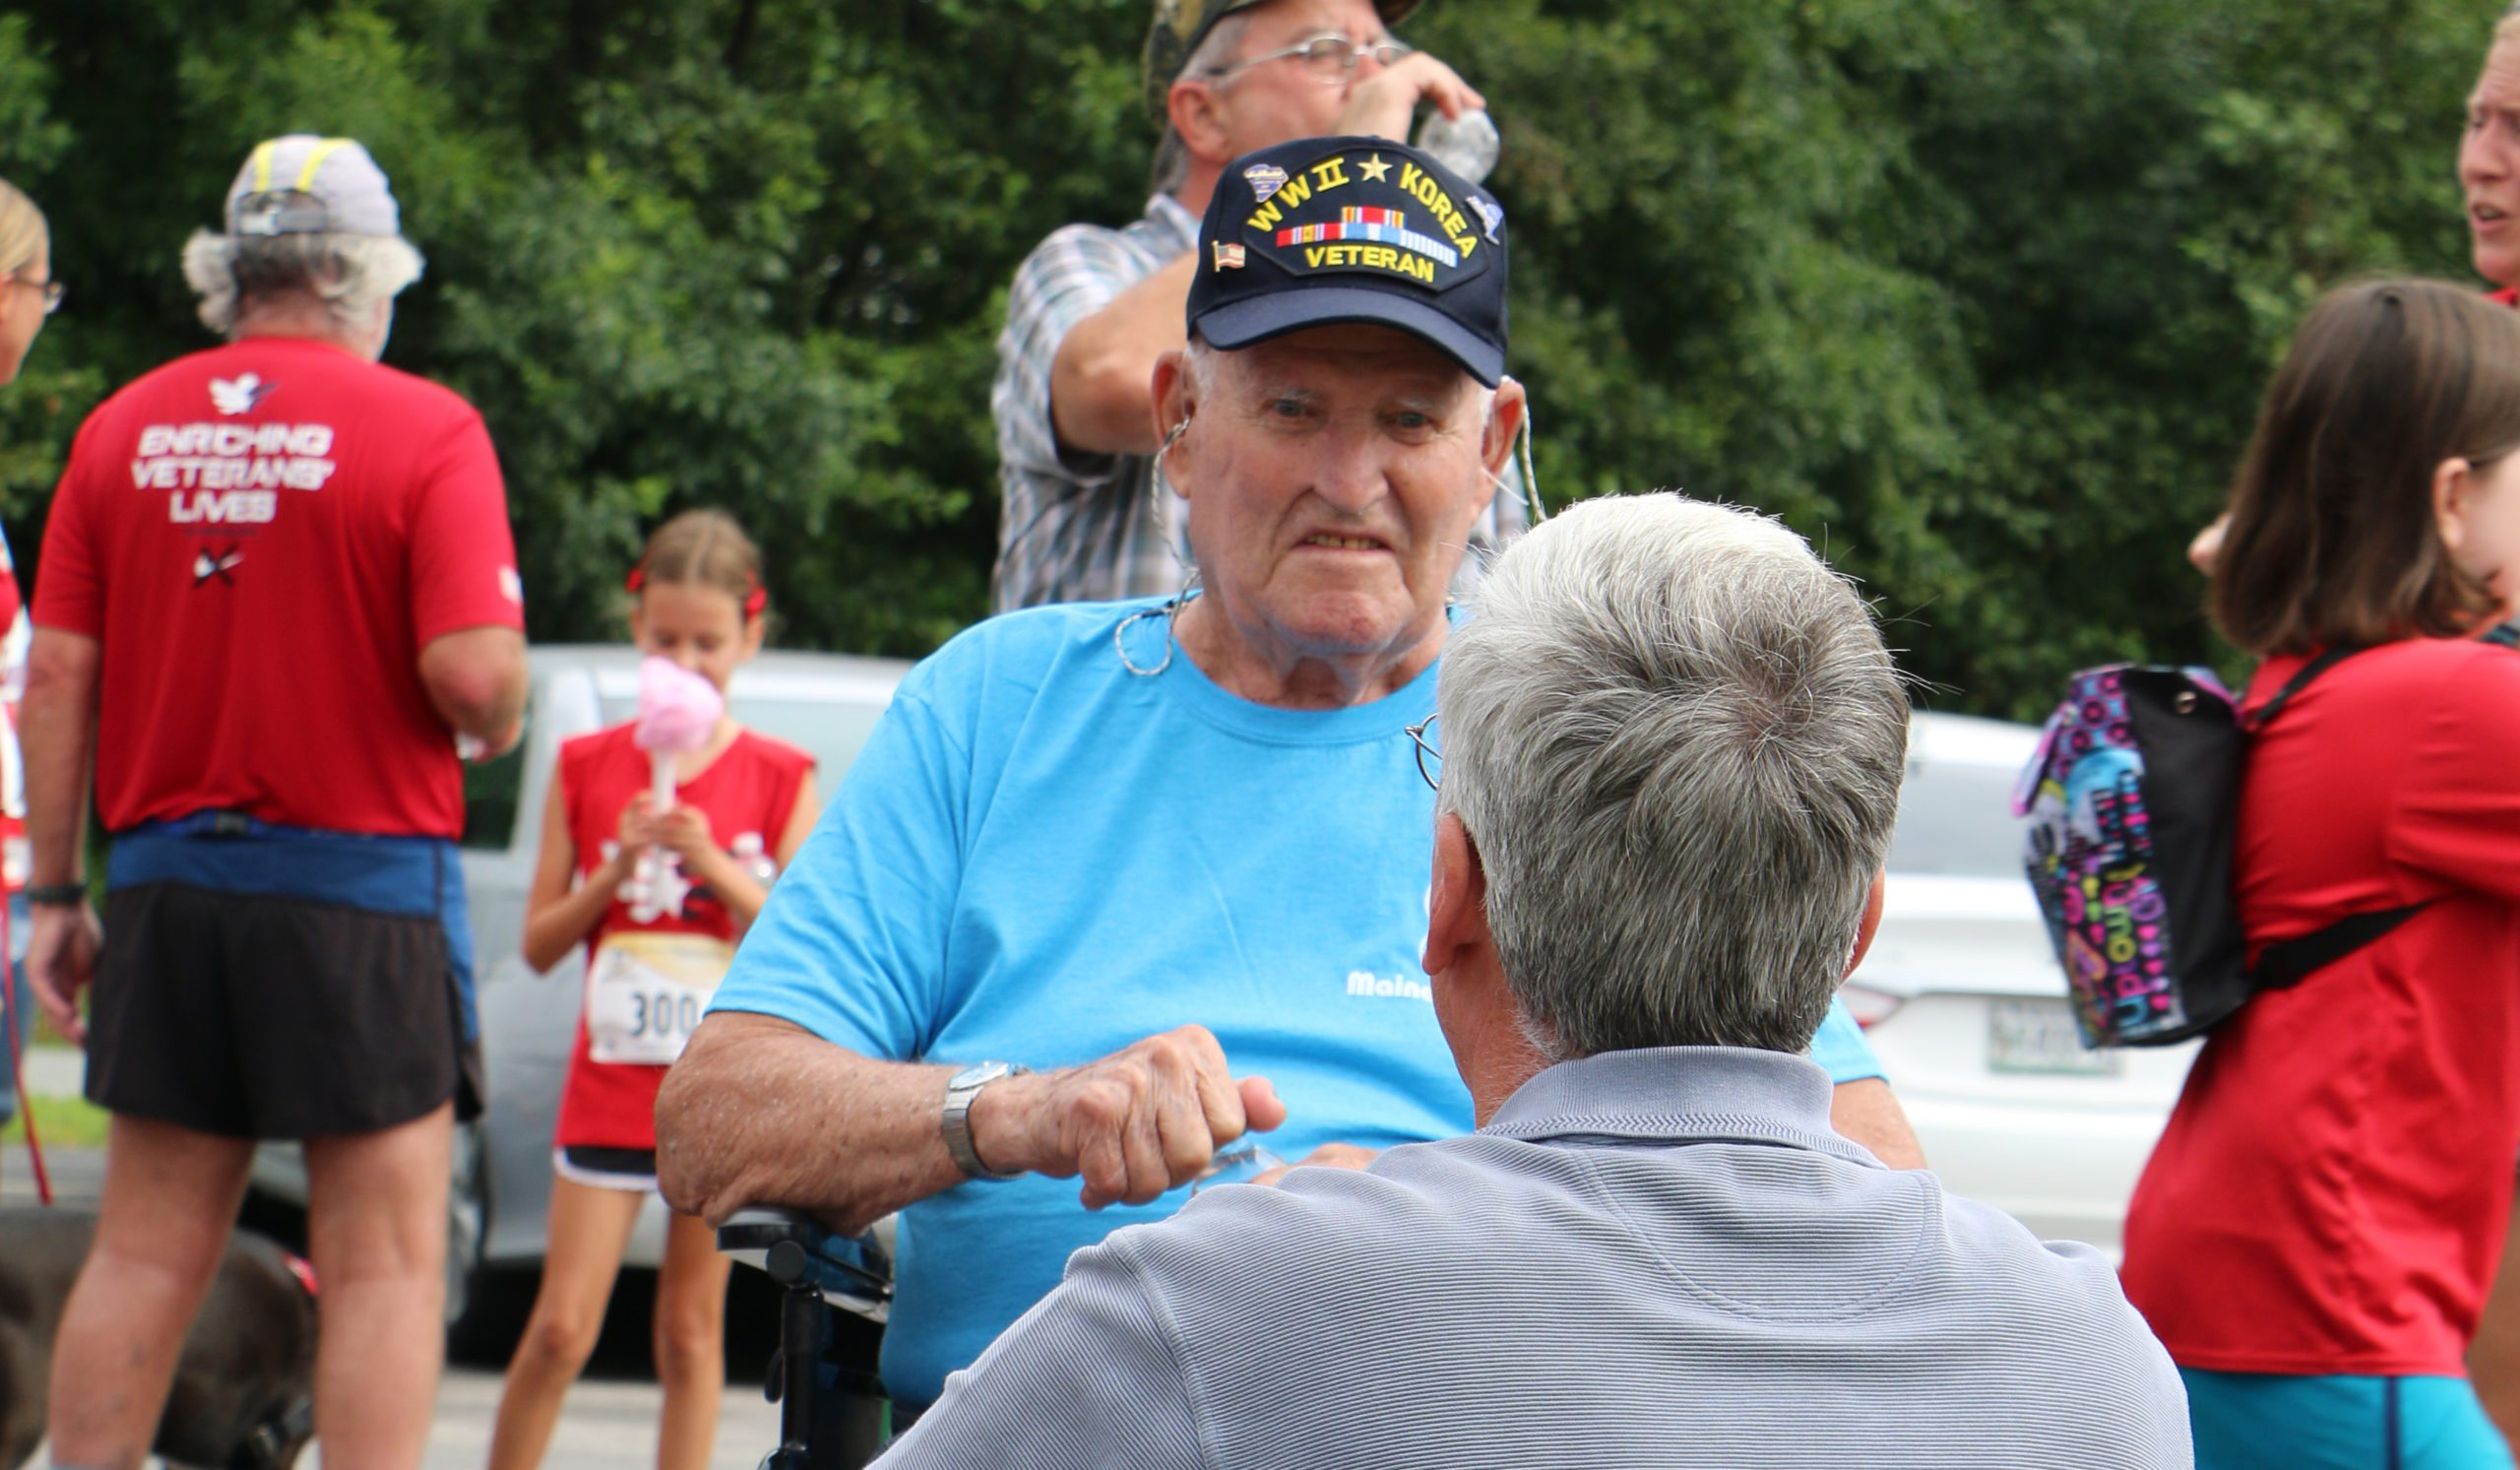 A Maine Veterans' Homes resident talks to family at an outdoor event